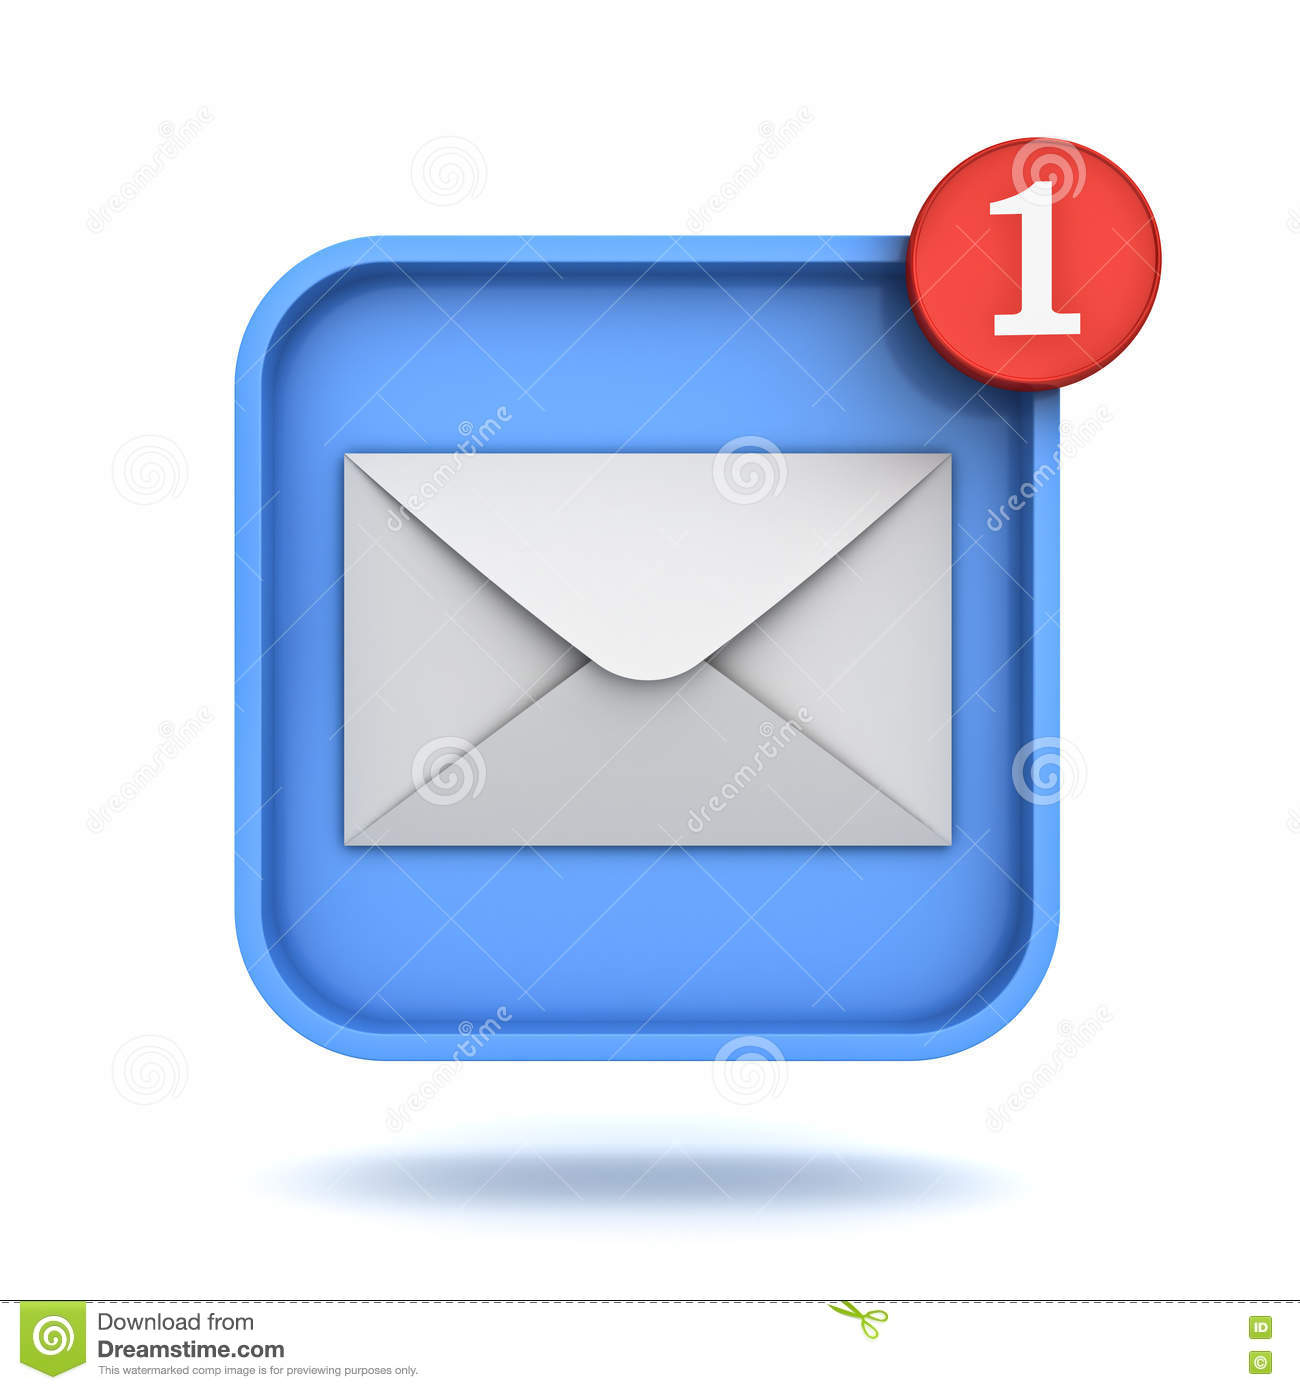 Alarm Systems Mail Chime Wireless Alert System Mail 1200 P 3822 additionally Watch Out For This Office 365 Phishing Email also Replacement Flag For Roadside Mailbox Mail Chest And Mail Package Drop Red in addition 31687 together with Winterdriving. on mailbox alert